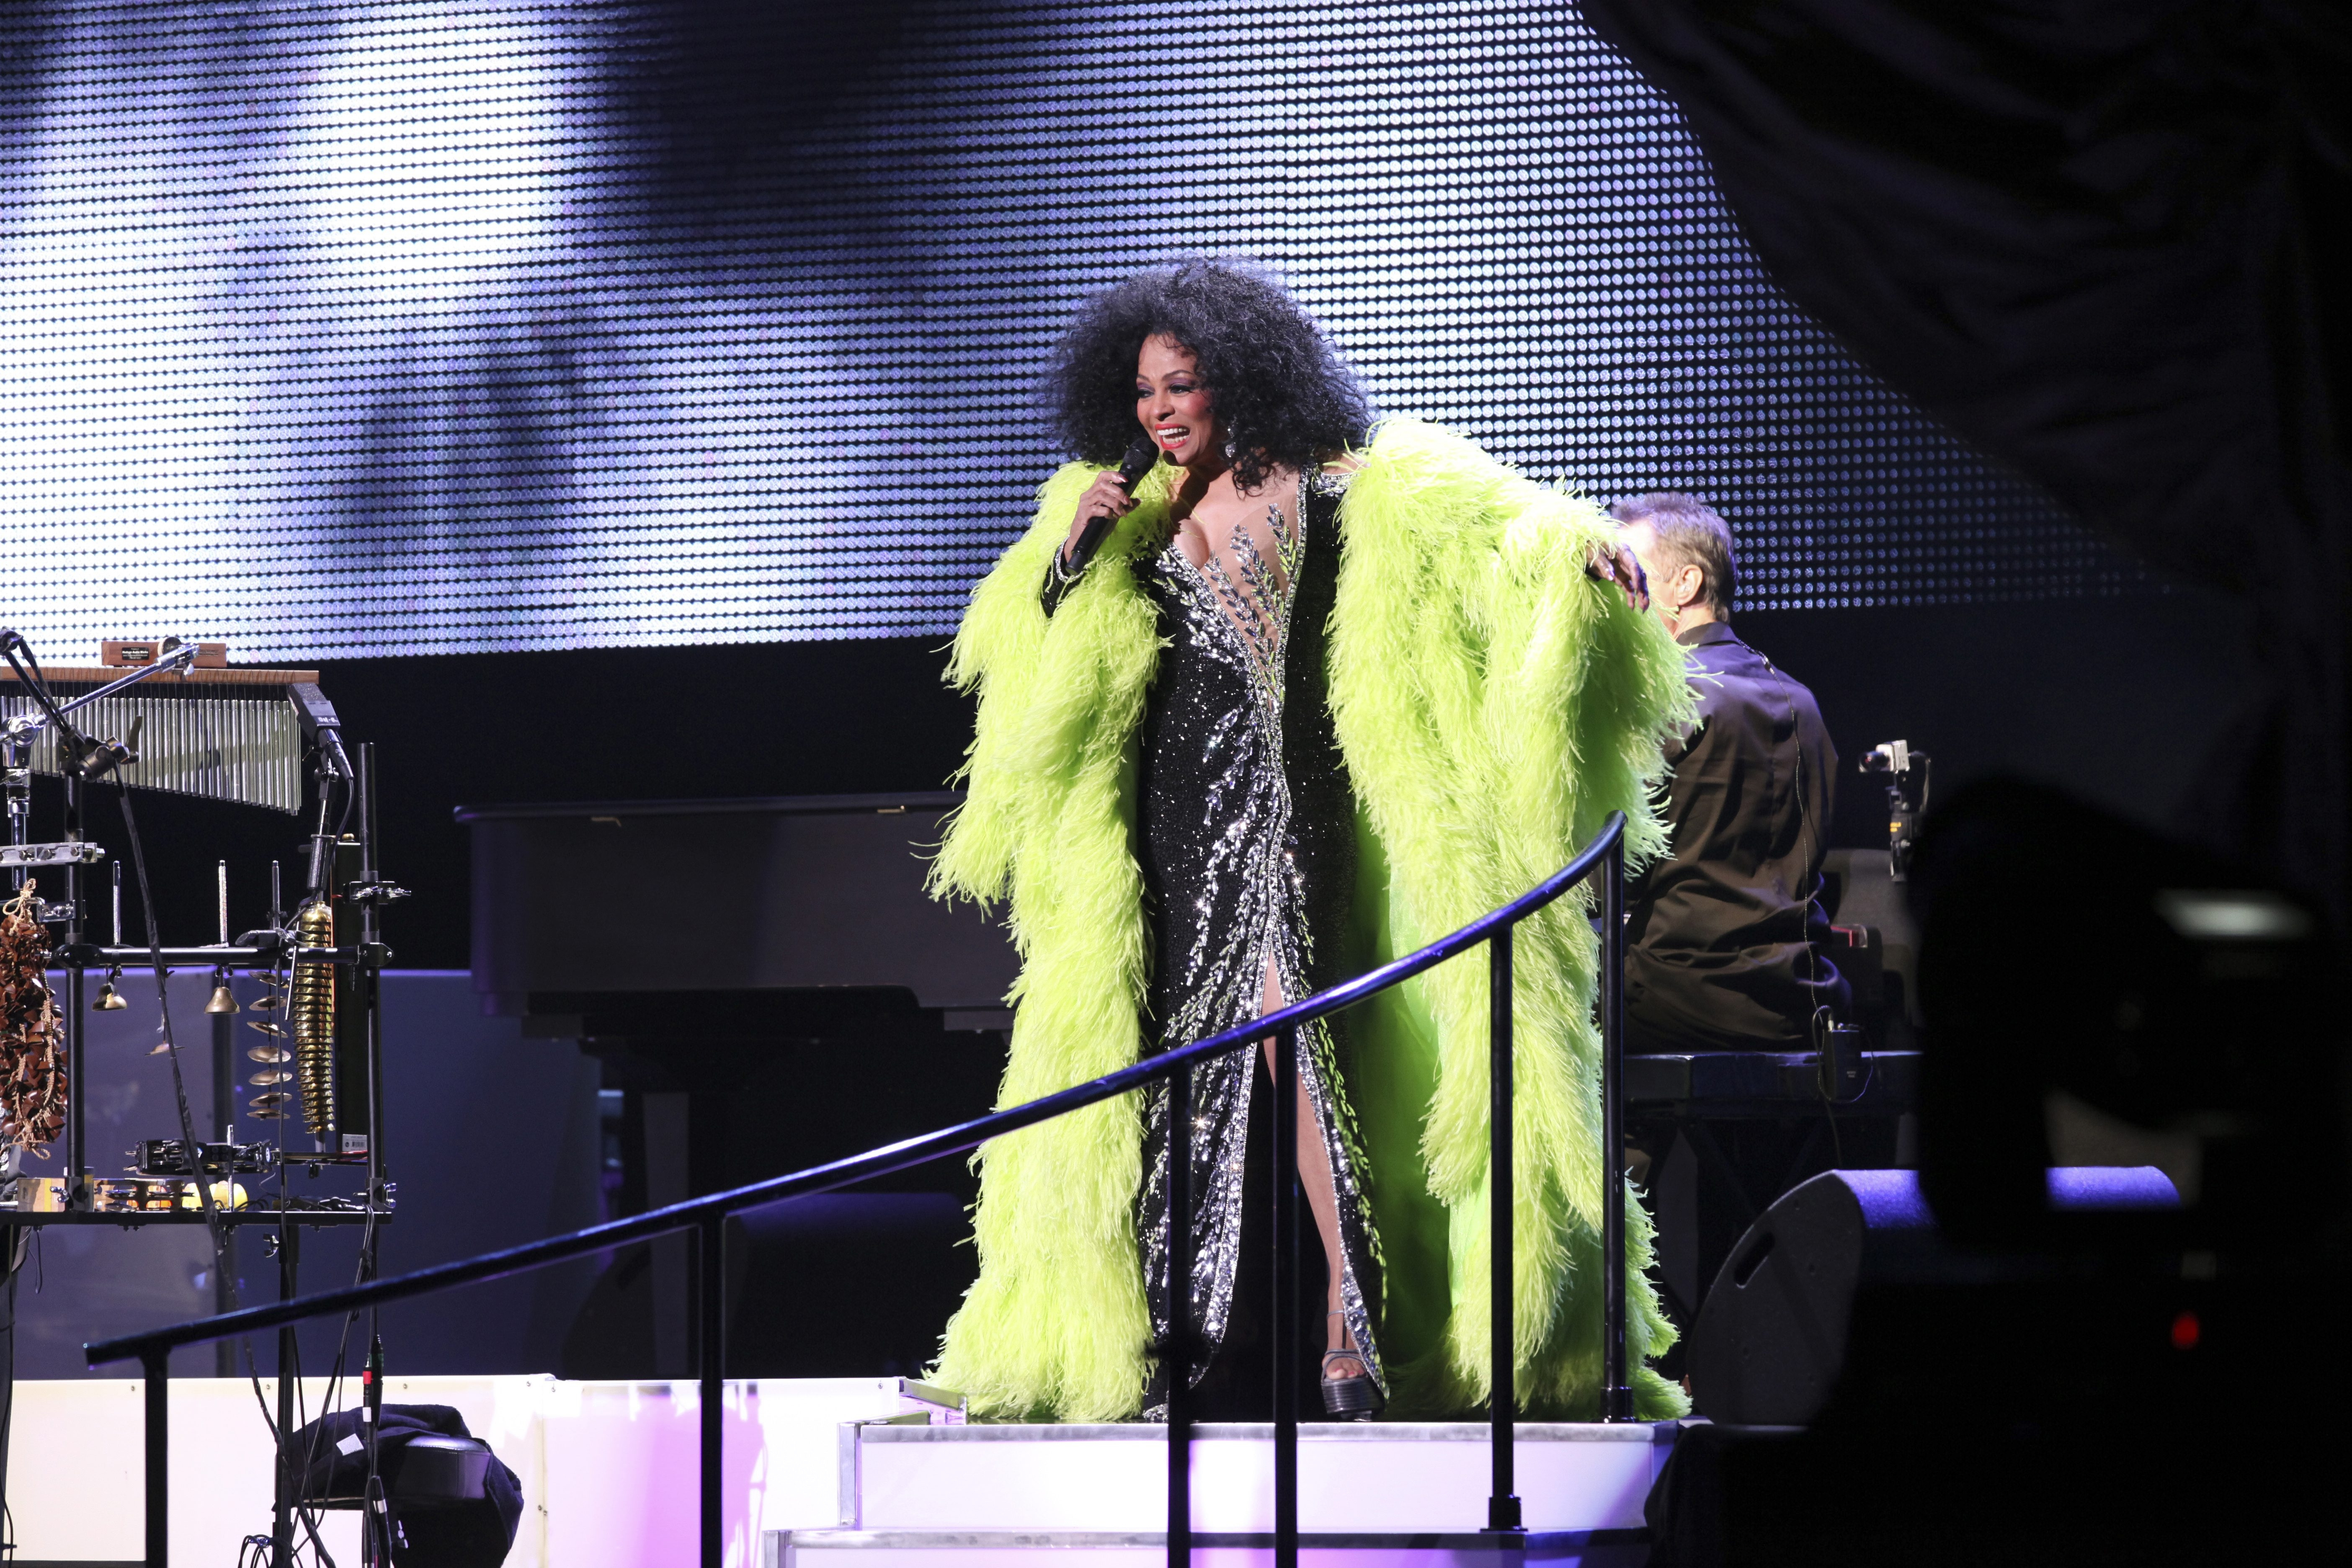 Diana Ross, shown performing in 2010, is one of the pillars of the Motown sound engineered by Berry Gordy. She comes to the Seneca Niagara Casino Events Center on Saturday.